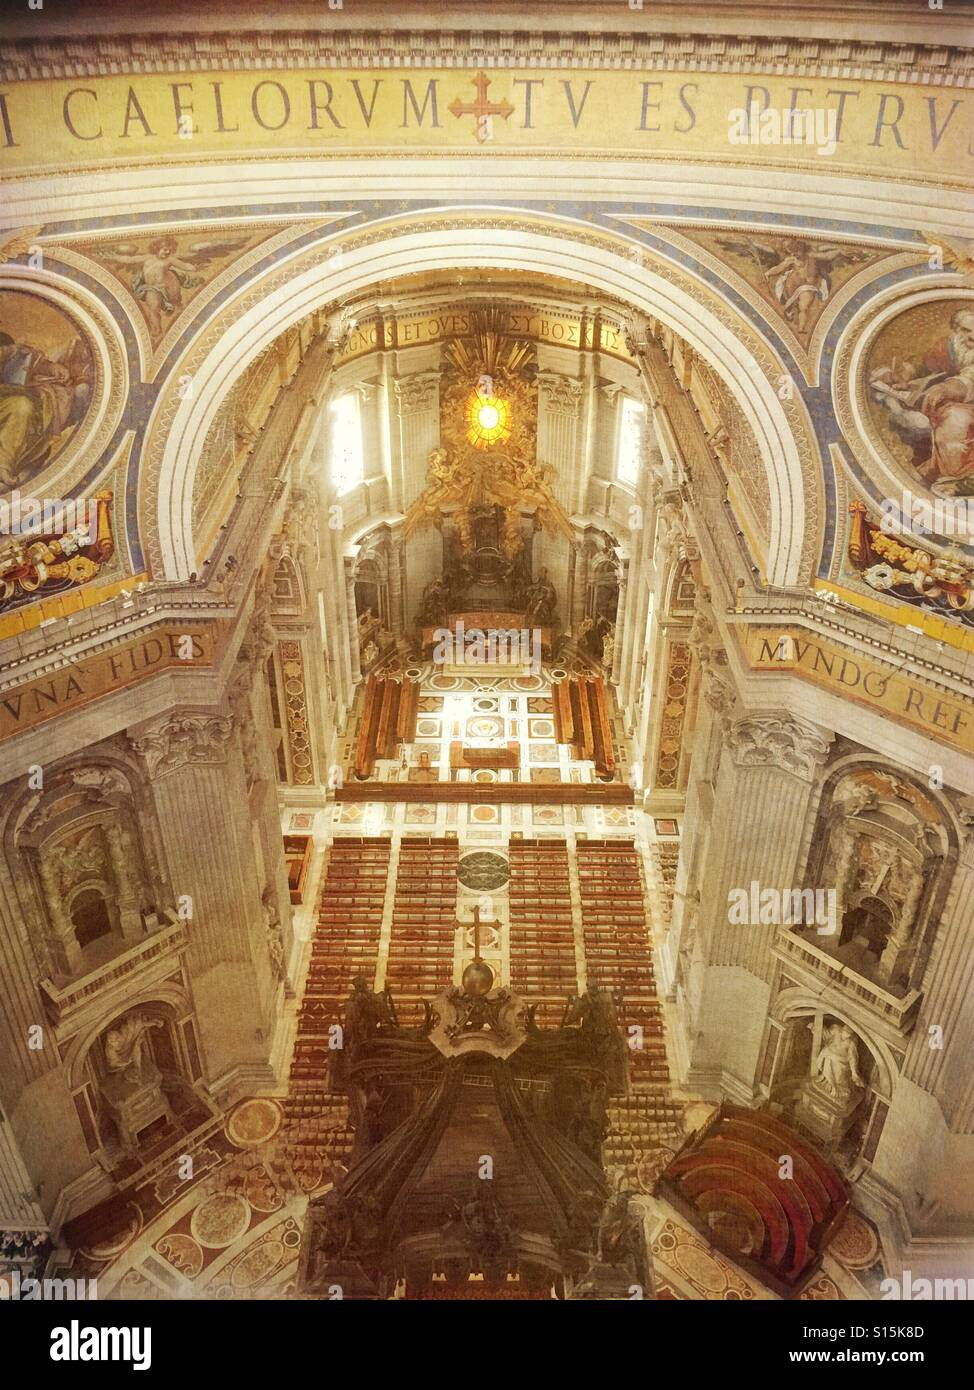 Vatican City - Interior area of St Peter's Basilica as seen from view deck inside cupola. Stock Photo